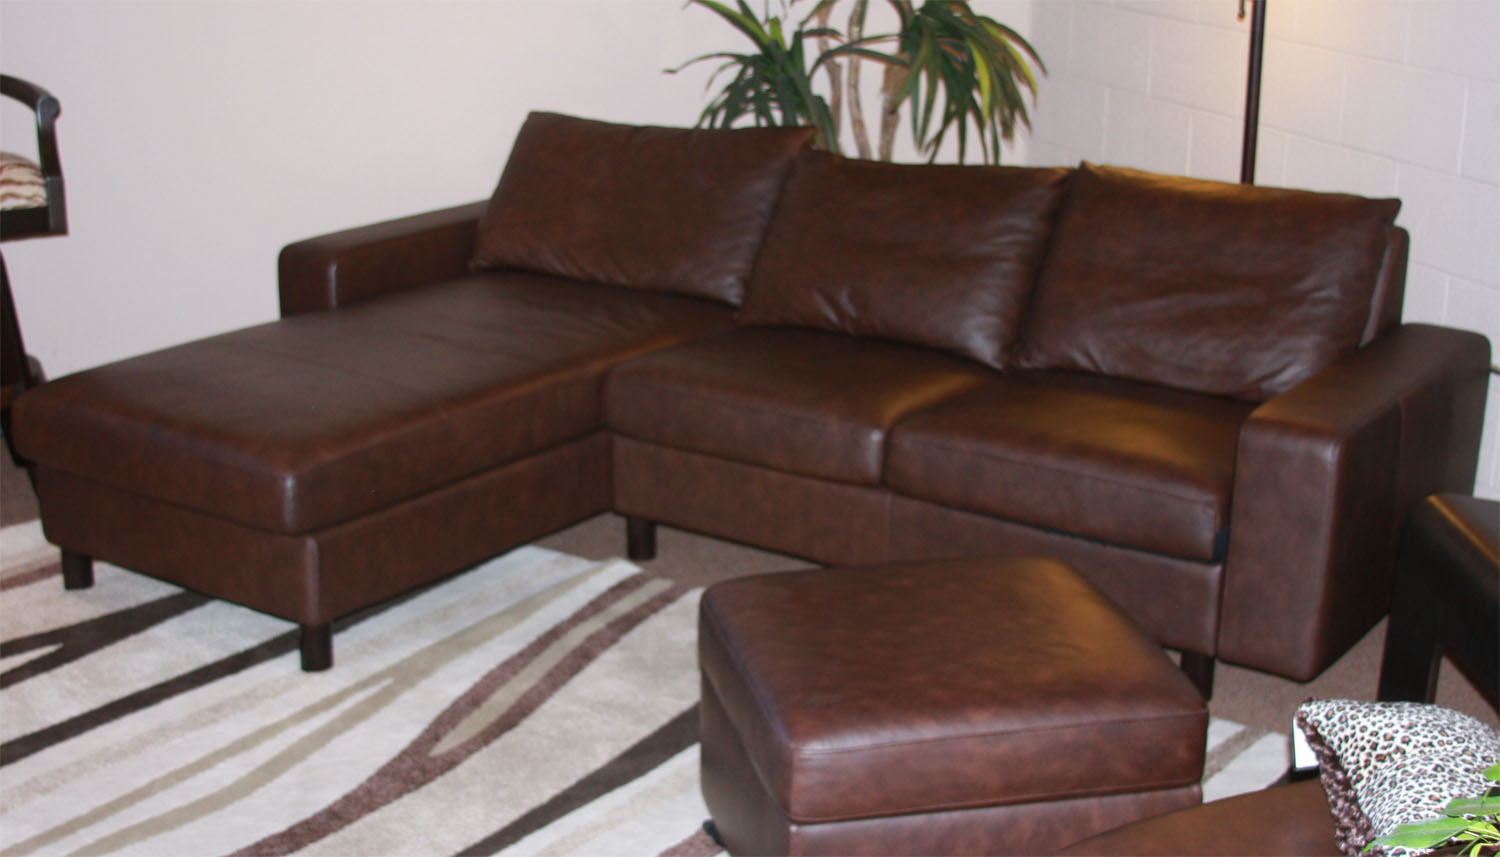 Stressless Paloma Chocolate Leather Color Sofa From Ekornes